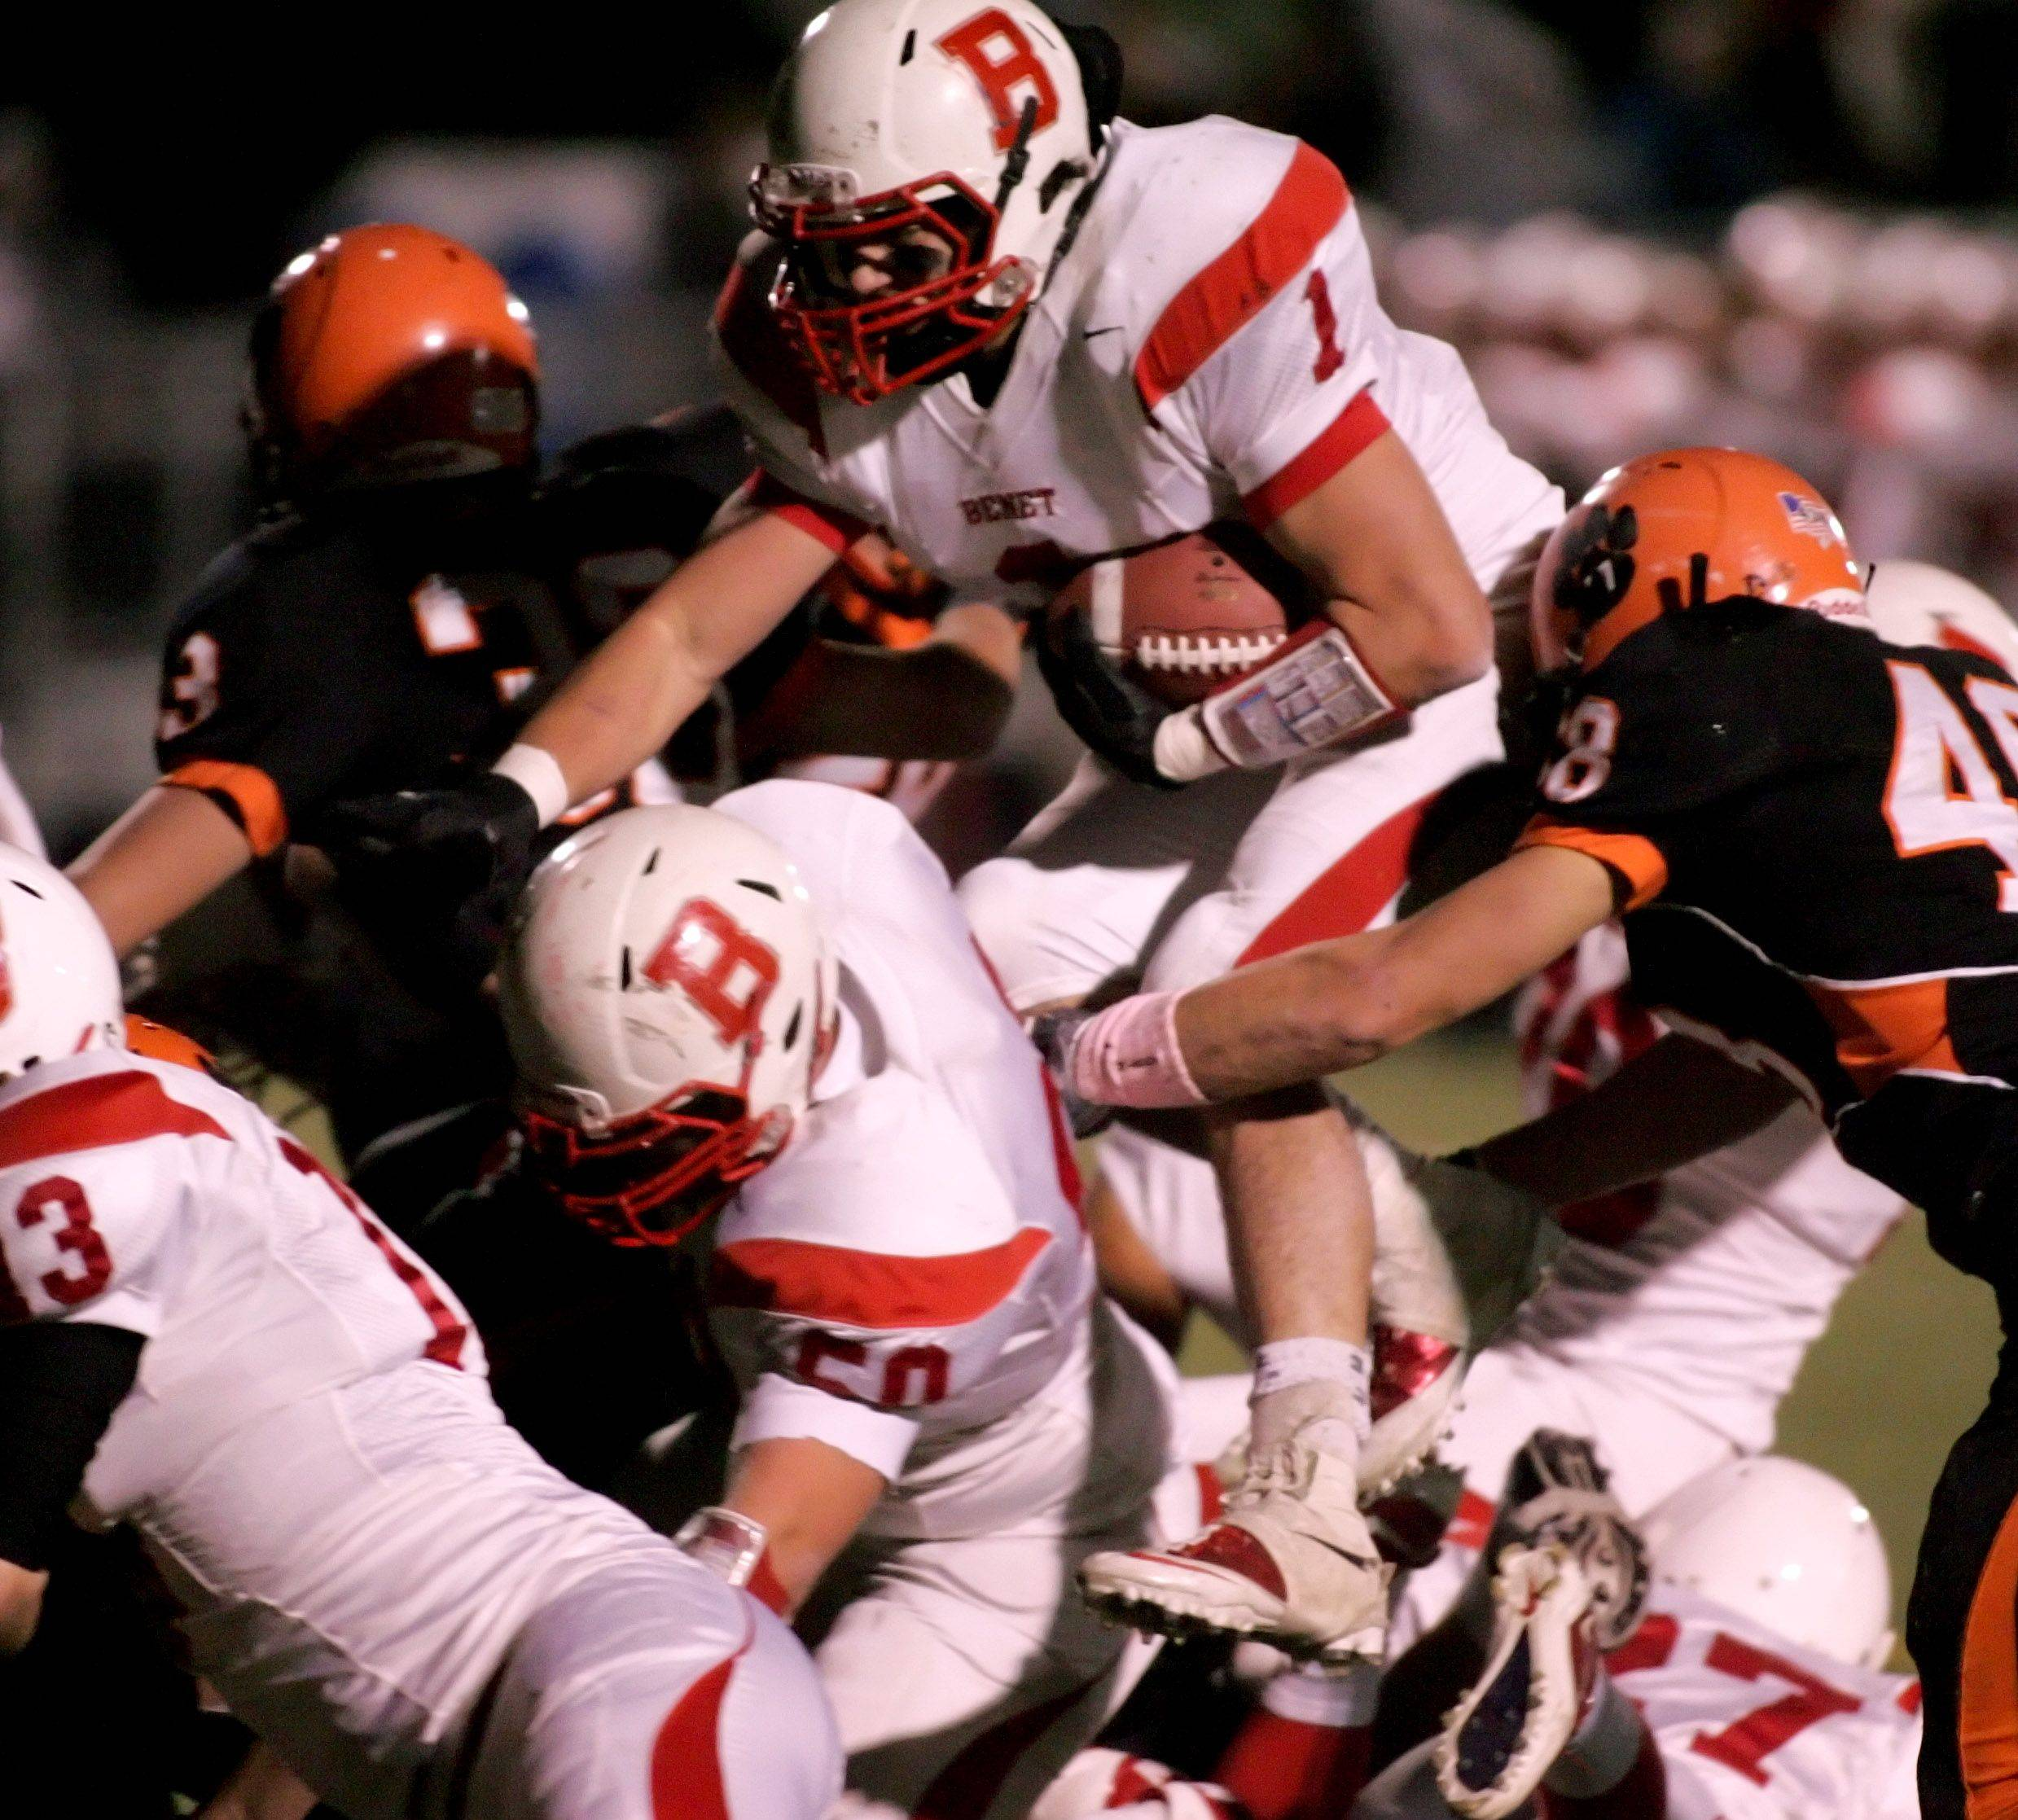 Pat Boyle of Benet, moves the ball closer to the endzone in action against Wheaton Warrenville South during playoff football Friday in Wheaton.